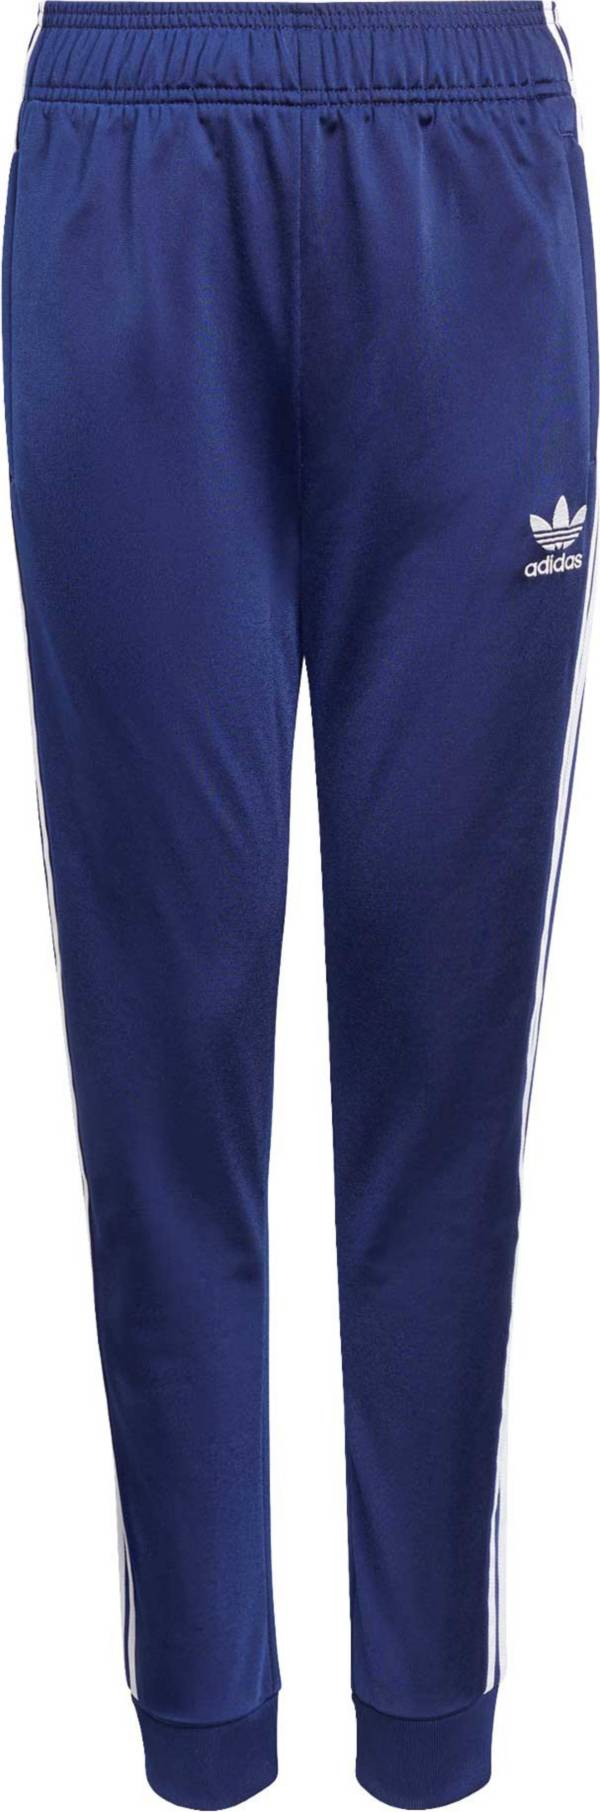 adidas Kids' Allover Print Pack SST Pants product image